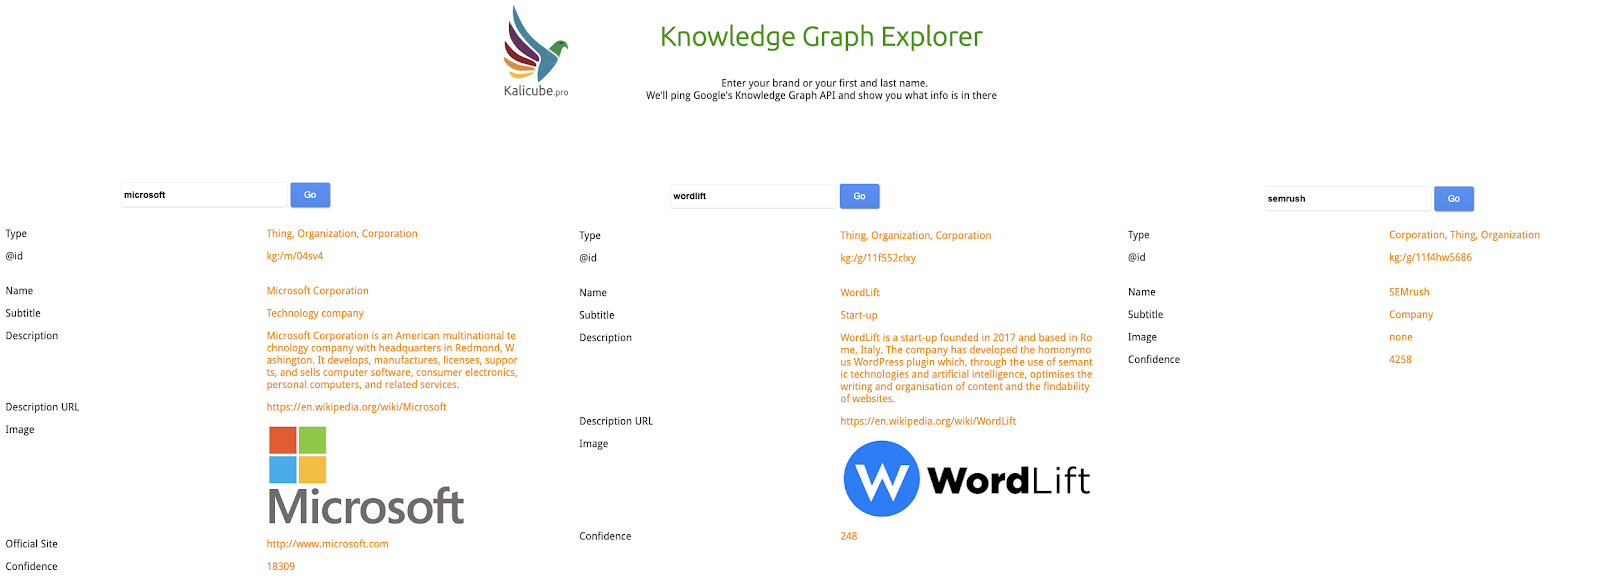 Knowledge Graph Explorer